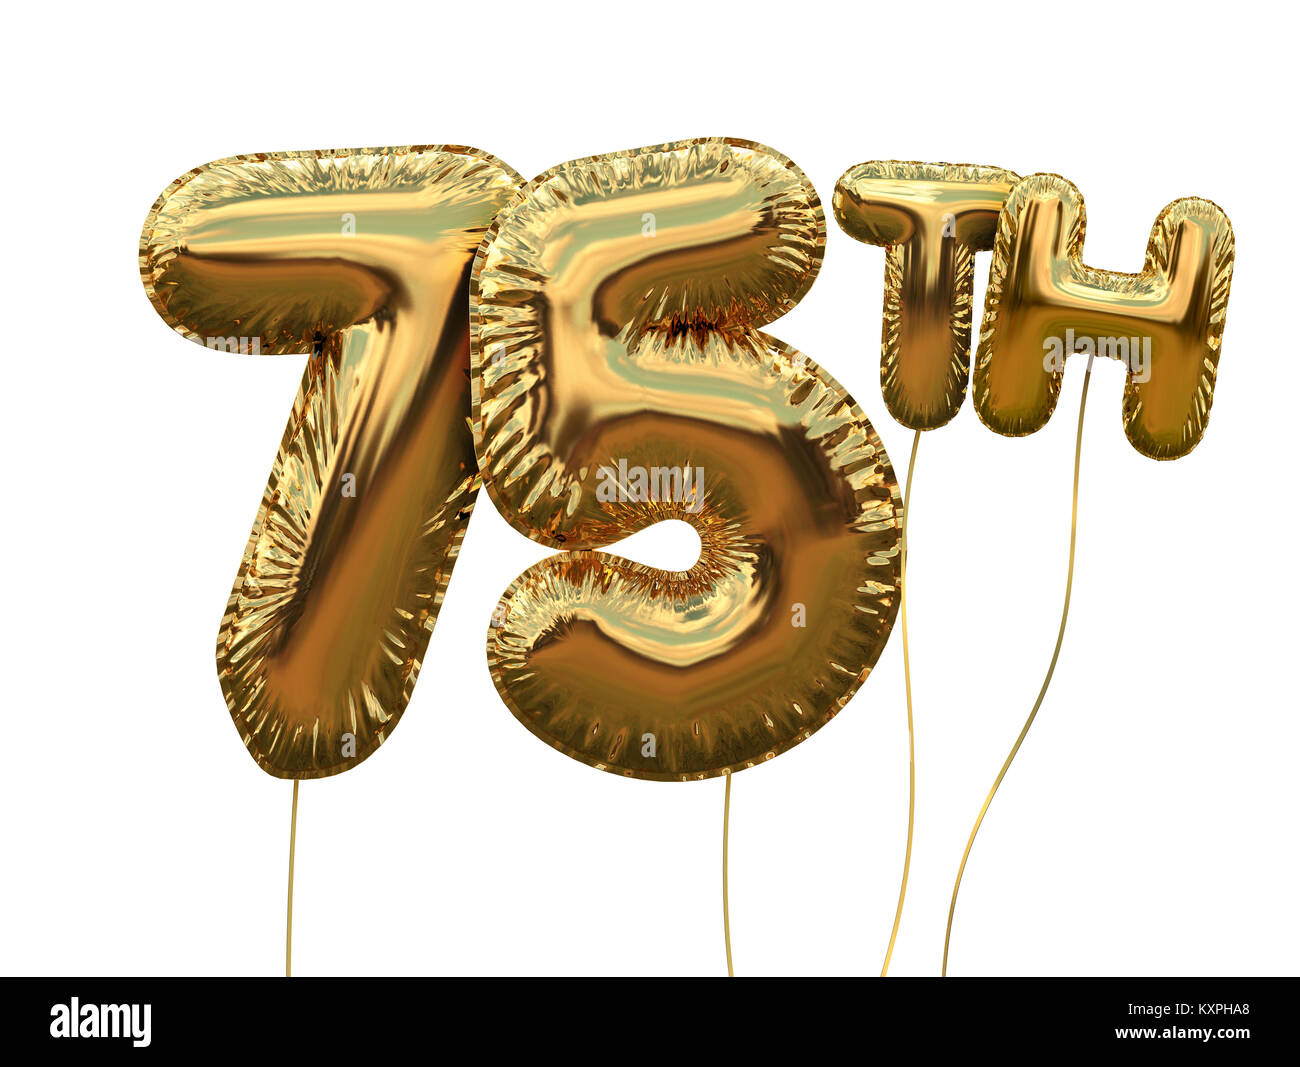 Gold Number 75 Foil Birthday Balloon Isolated On White Golden Party Celebration 3D Rendering